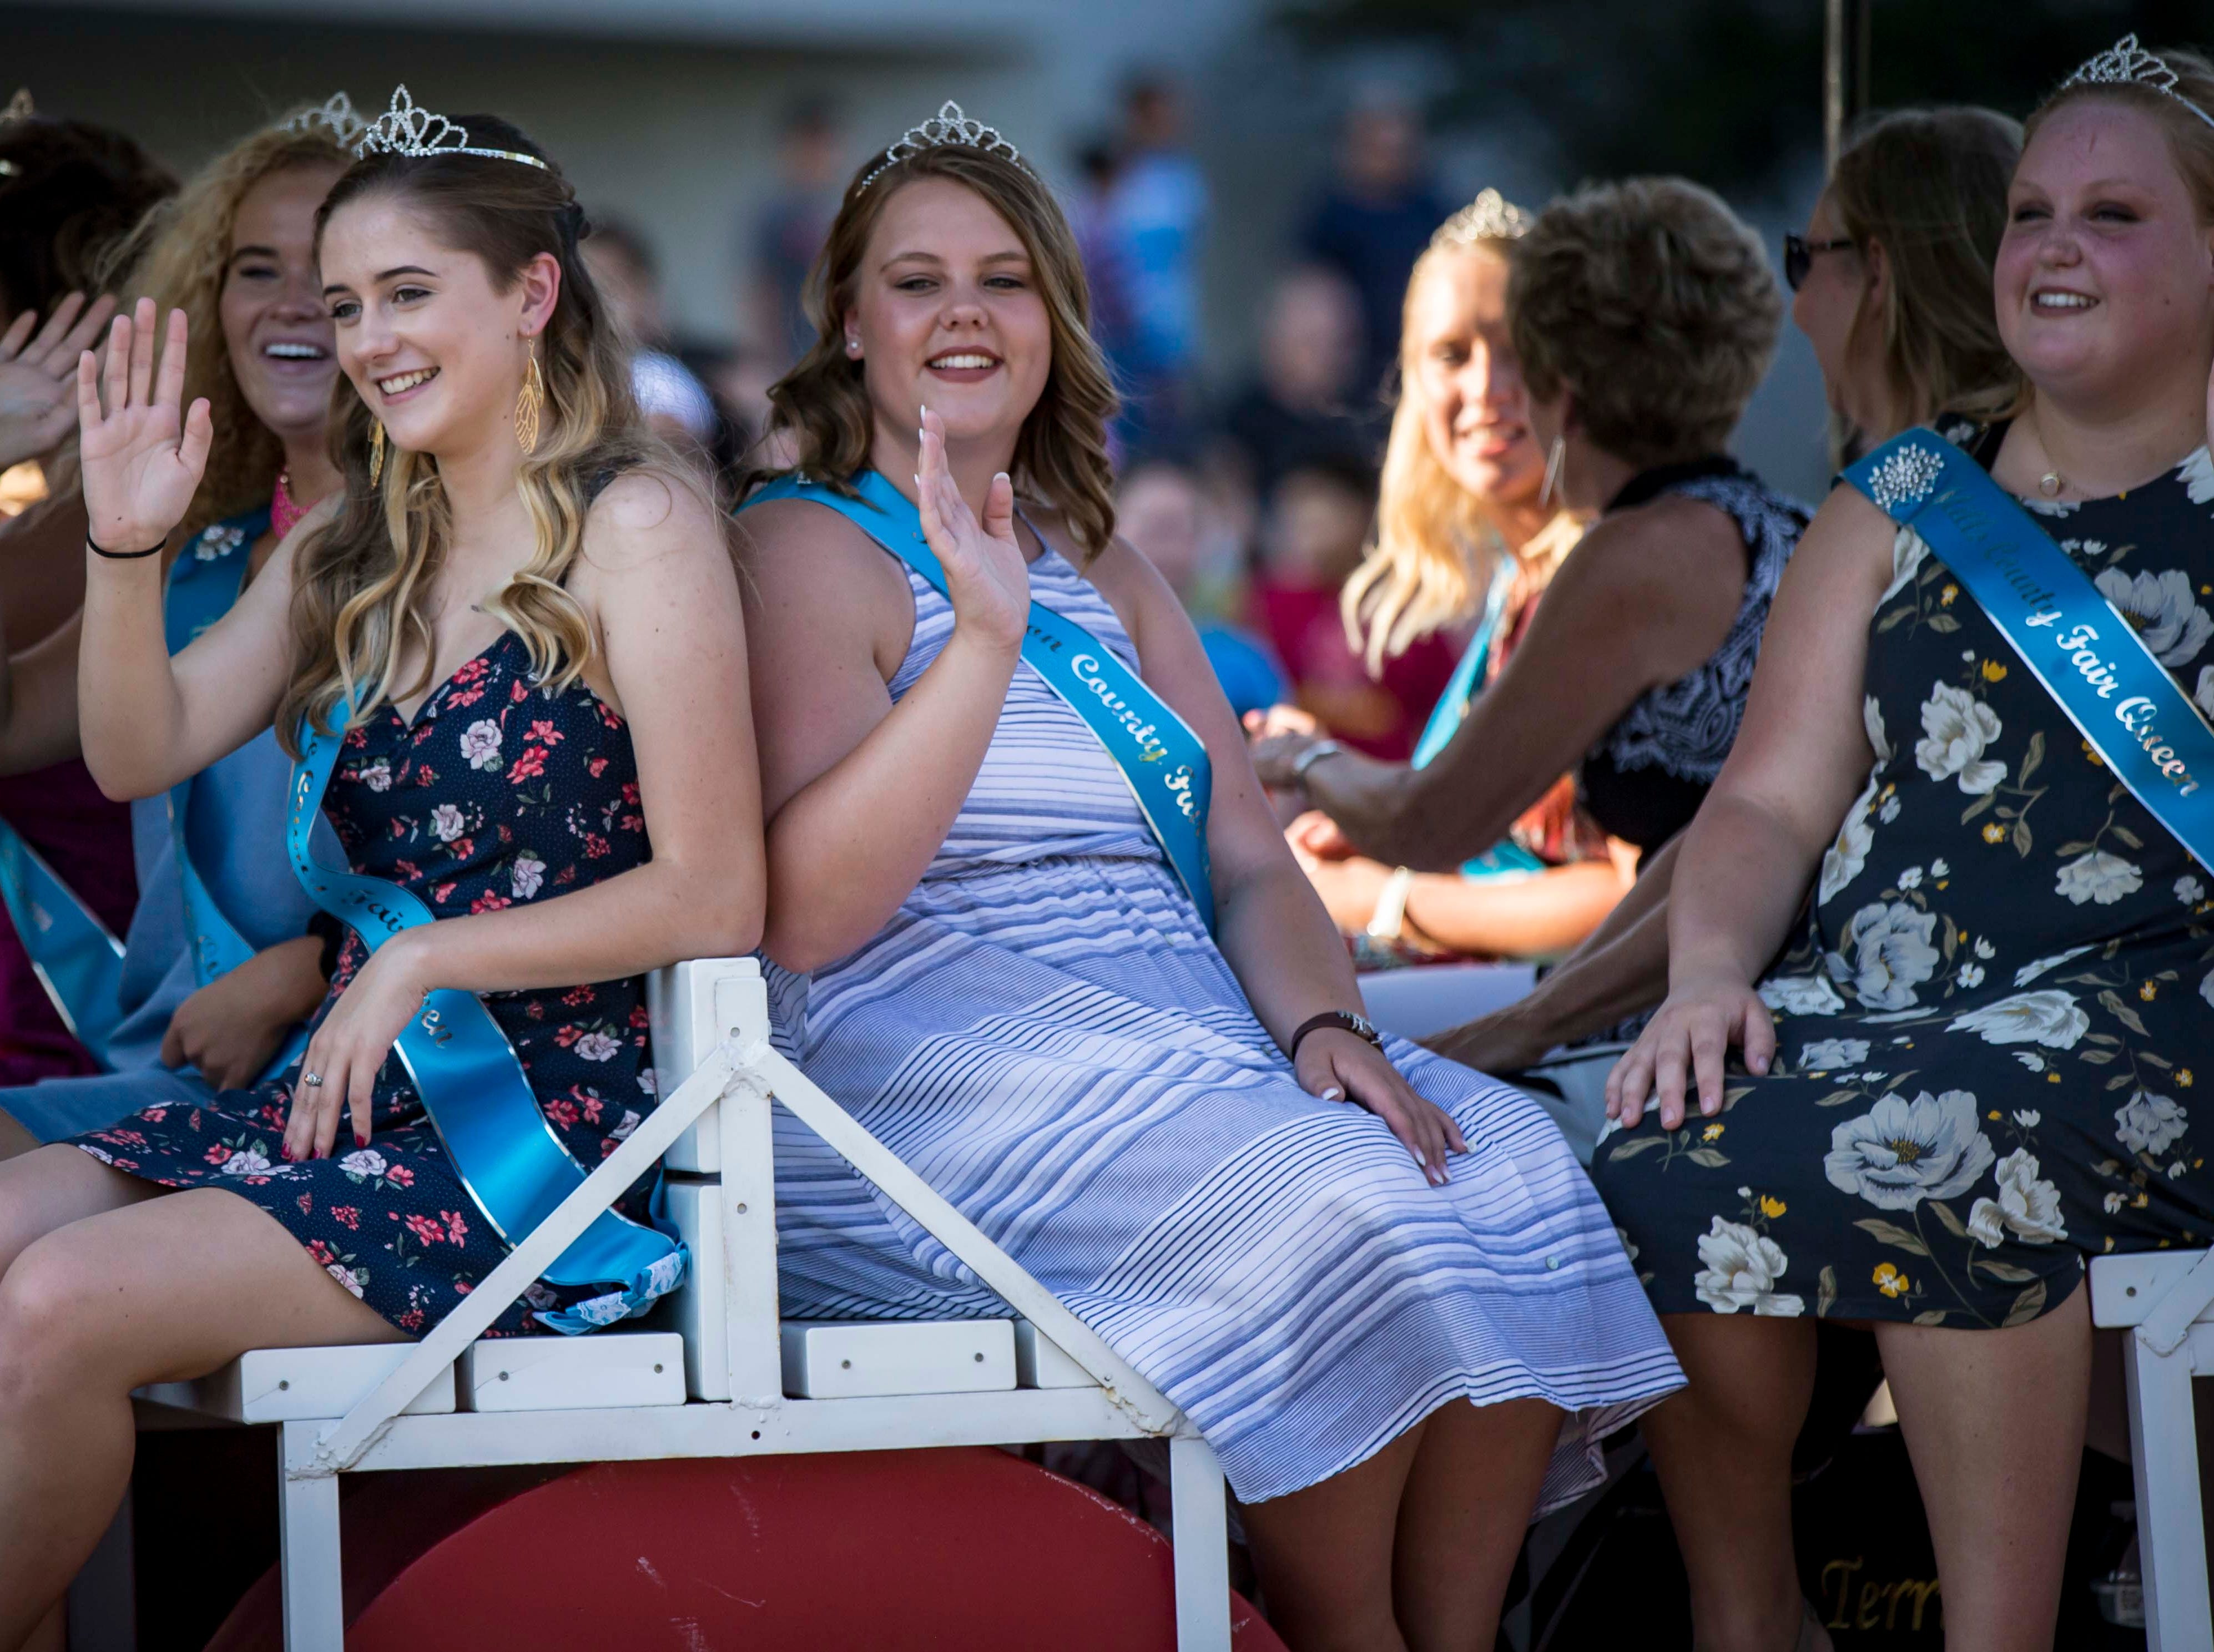 Iowa State Fair queen candidates from around the state ride in the 2018 Iowa State Fair parade from the Statehouse to downtown Des Moines Wednesday, Aug. 8, 2018. The Iowa State Fair runs from Aug. 9Ð19.